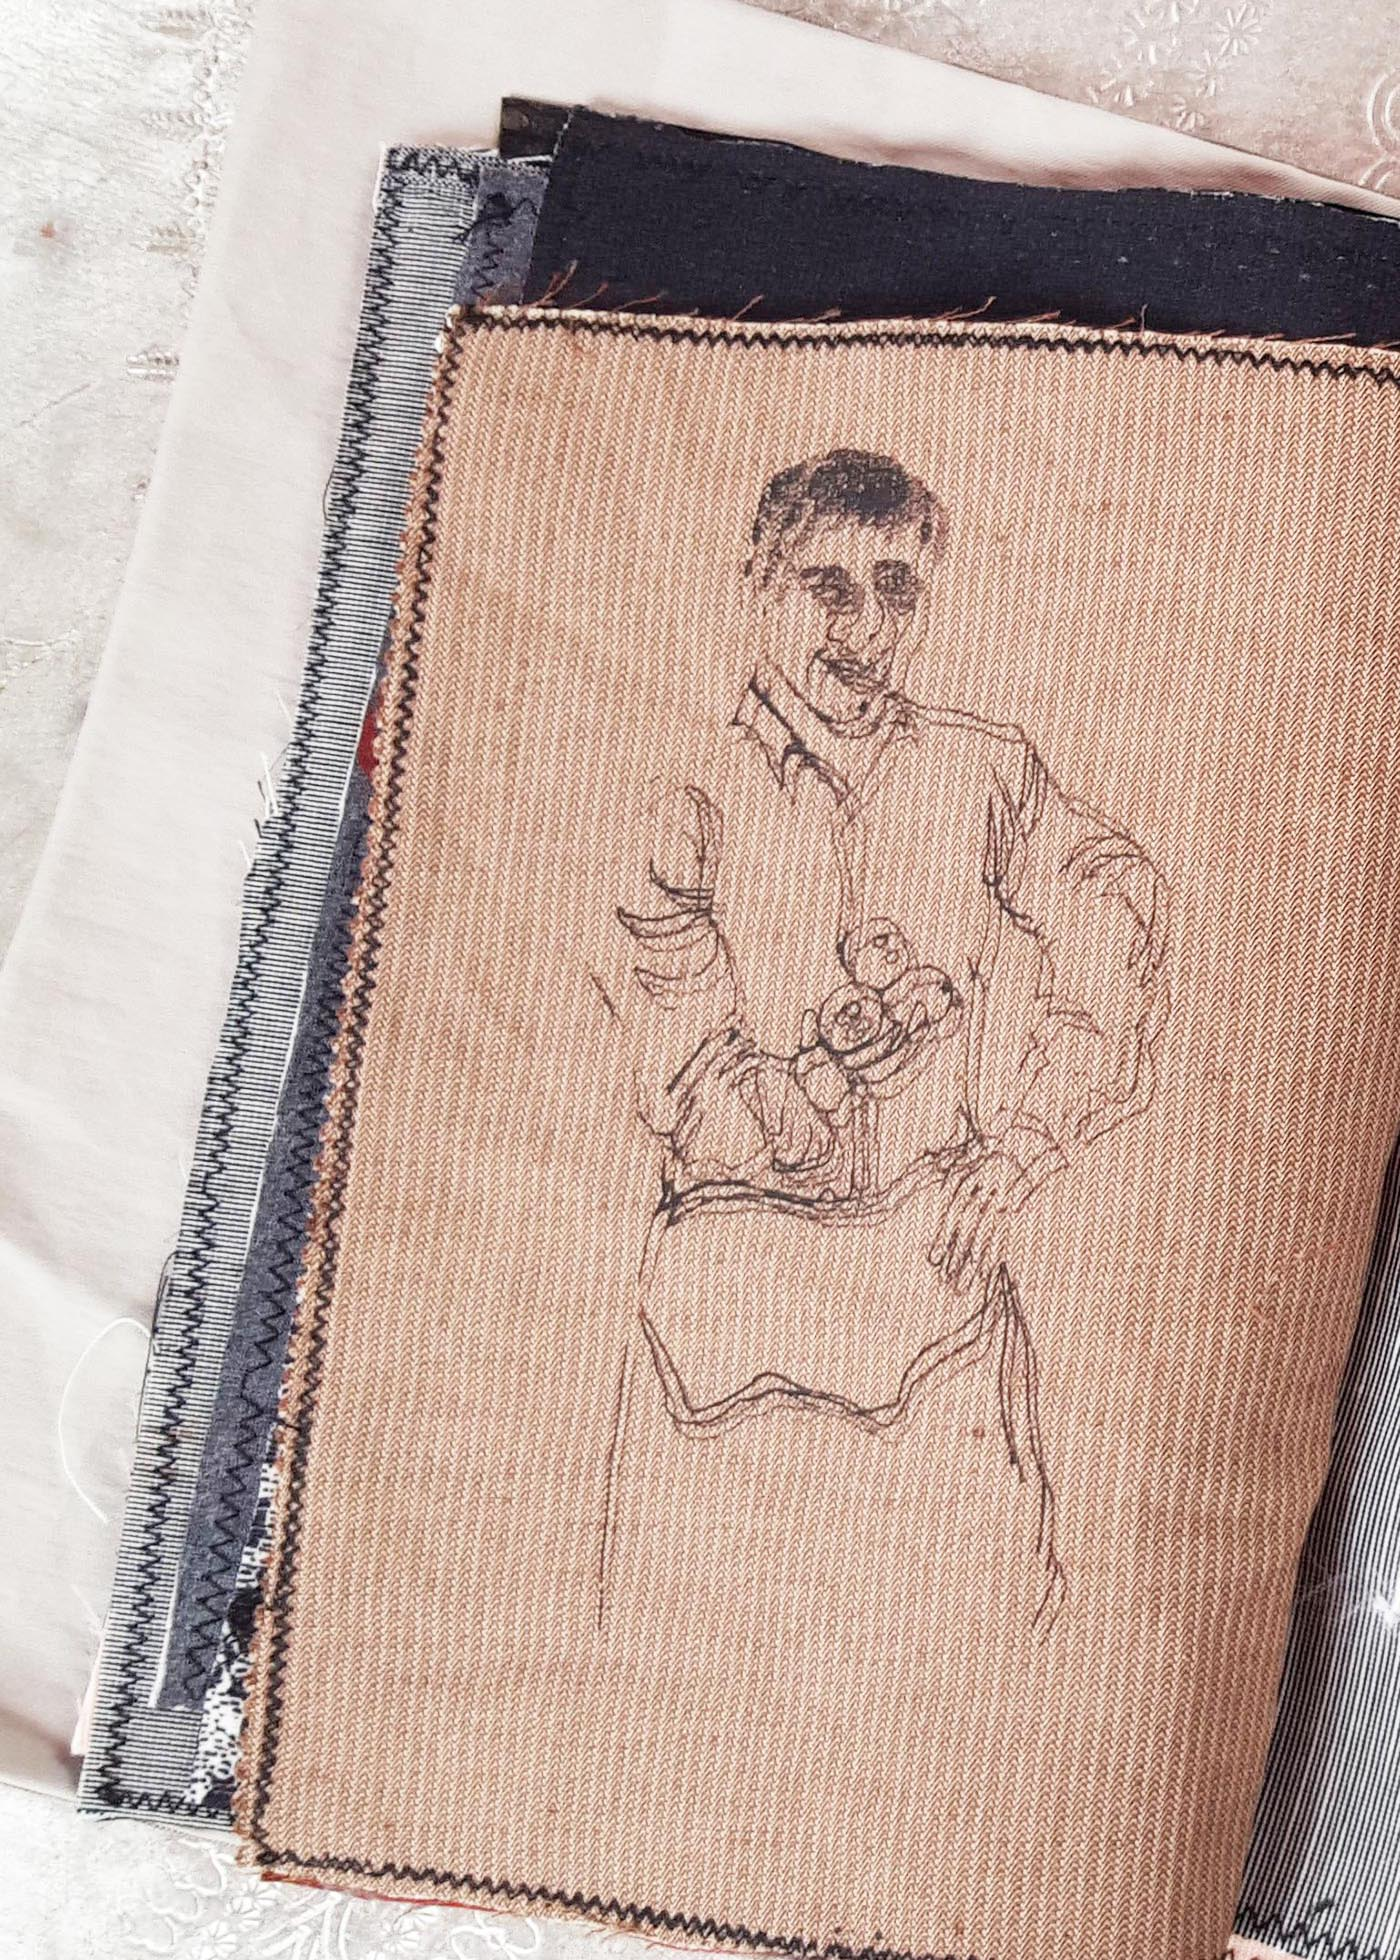 portait drawing, textured doodle, fabric swatches